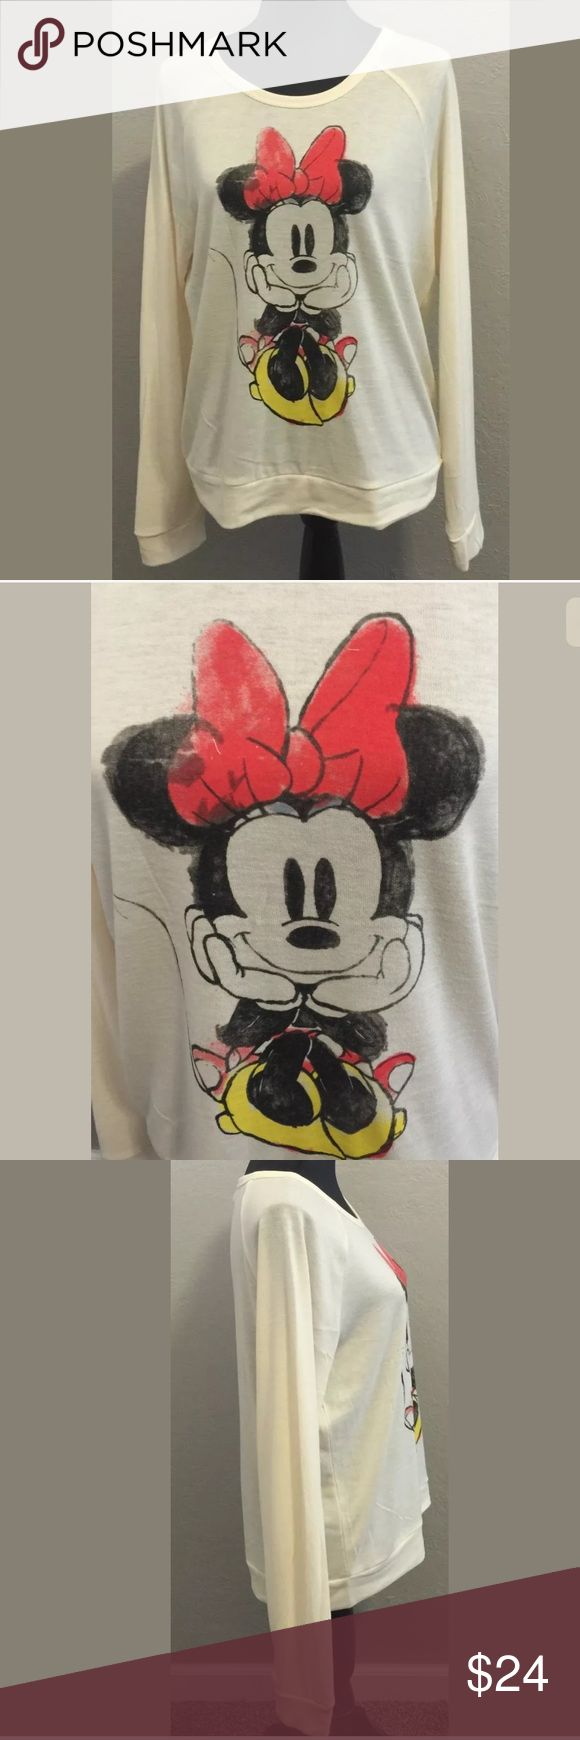 """Disney Minnie Mouse Jr large cream long sleeve top New without tags Disney Jr large Minnie Mouse long sleeve top. Polyester, Rayon, Spandex. Soft. Looks like water colors. Bust 21"""" armpit to armpit. Length 24"""" shoulder to hem. Sleeve 28"""" . Measurements are approximate. Disney Tops Tees - Long Sleeve"""